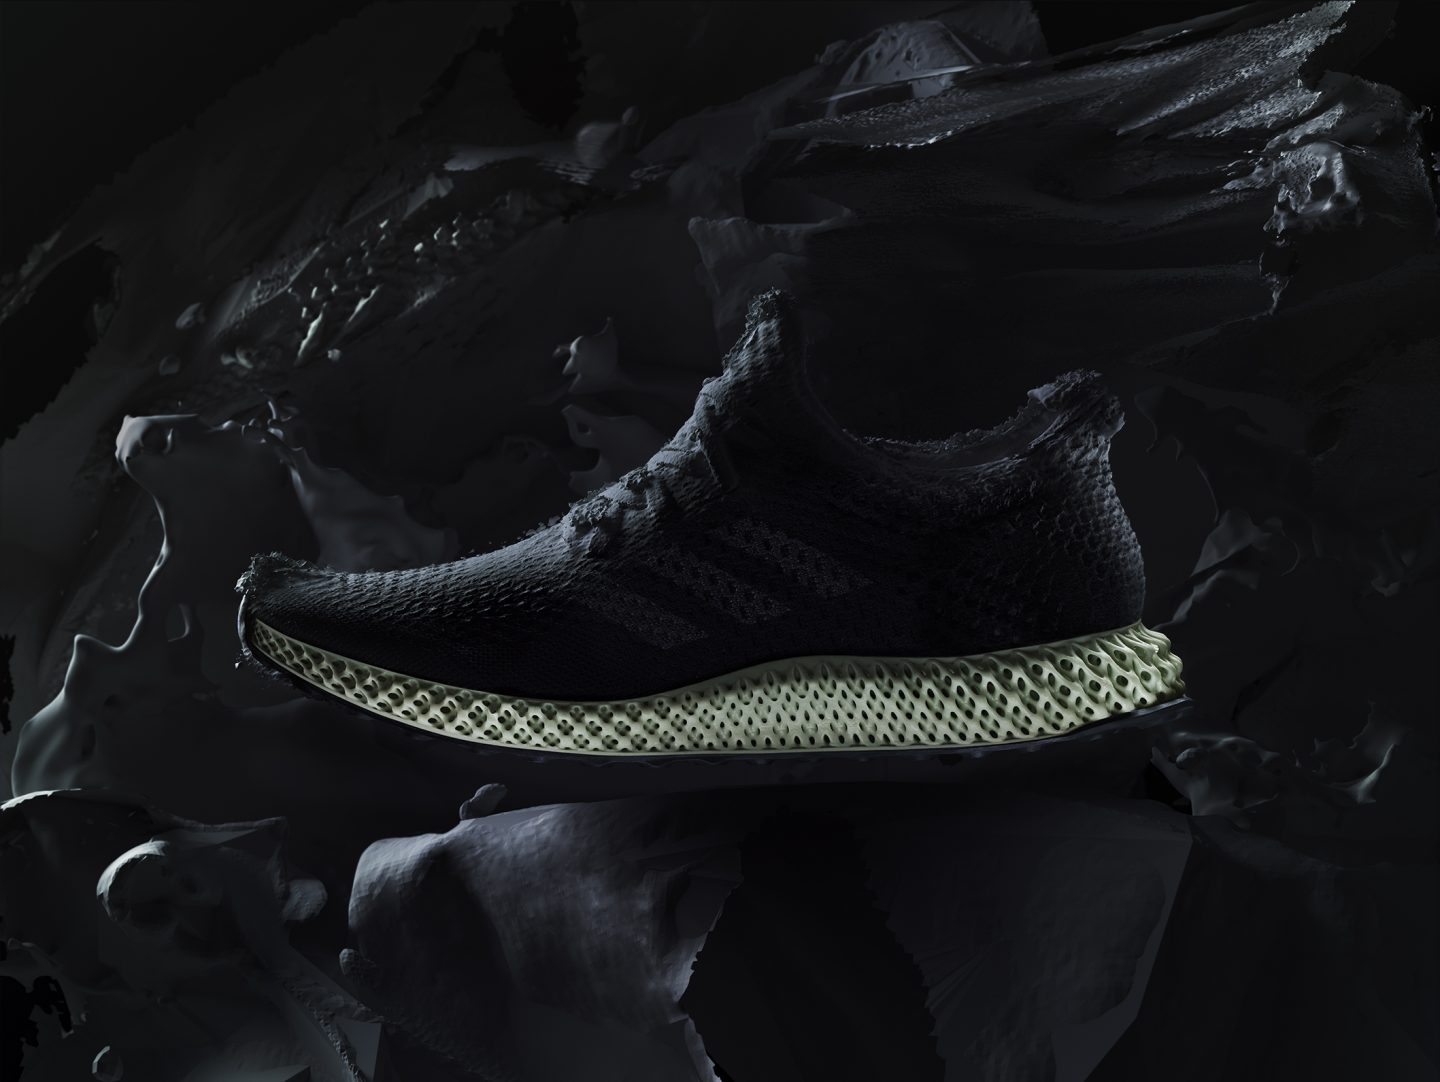 5a804e01381c Meet the Partner Behind the adidas Shoe  Futurecraft 4D